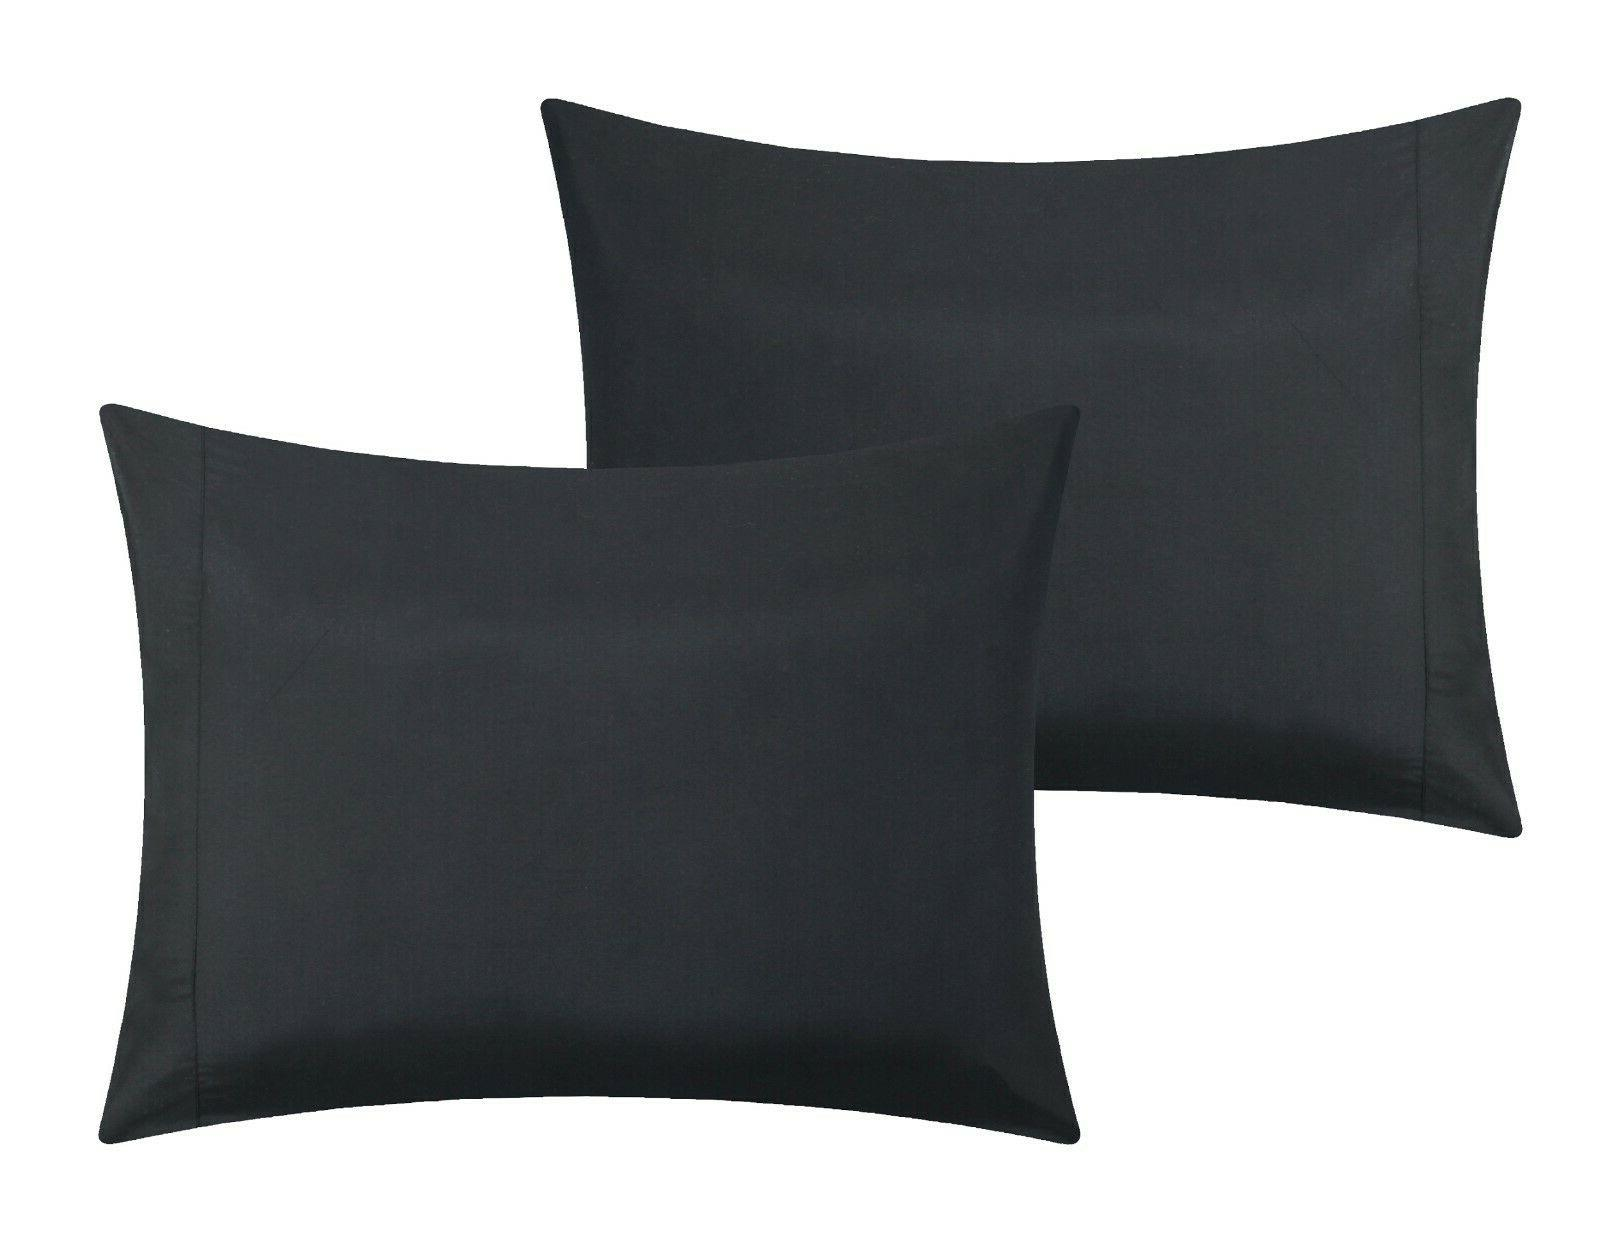 Chic Home Piece Bed a Bag Comforter Black